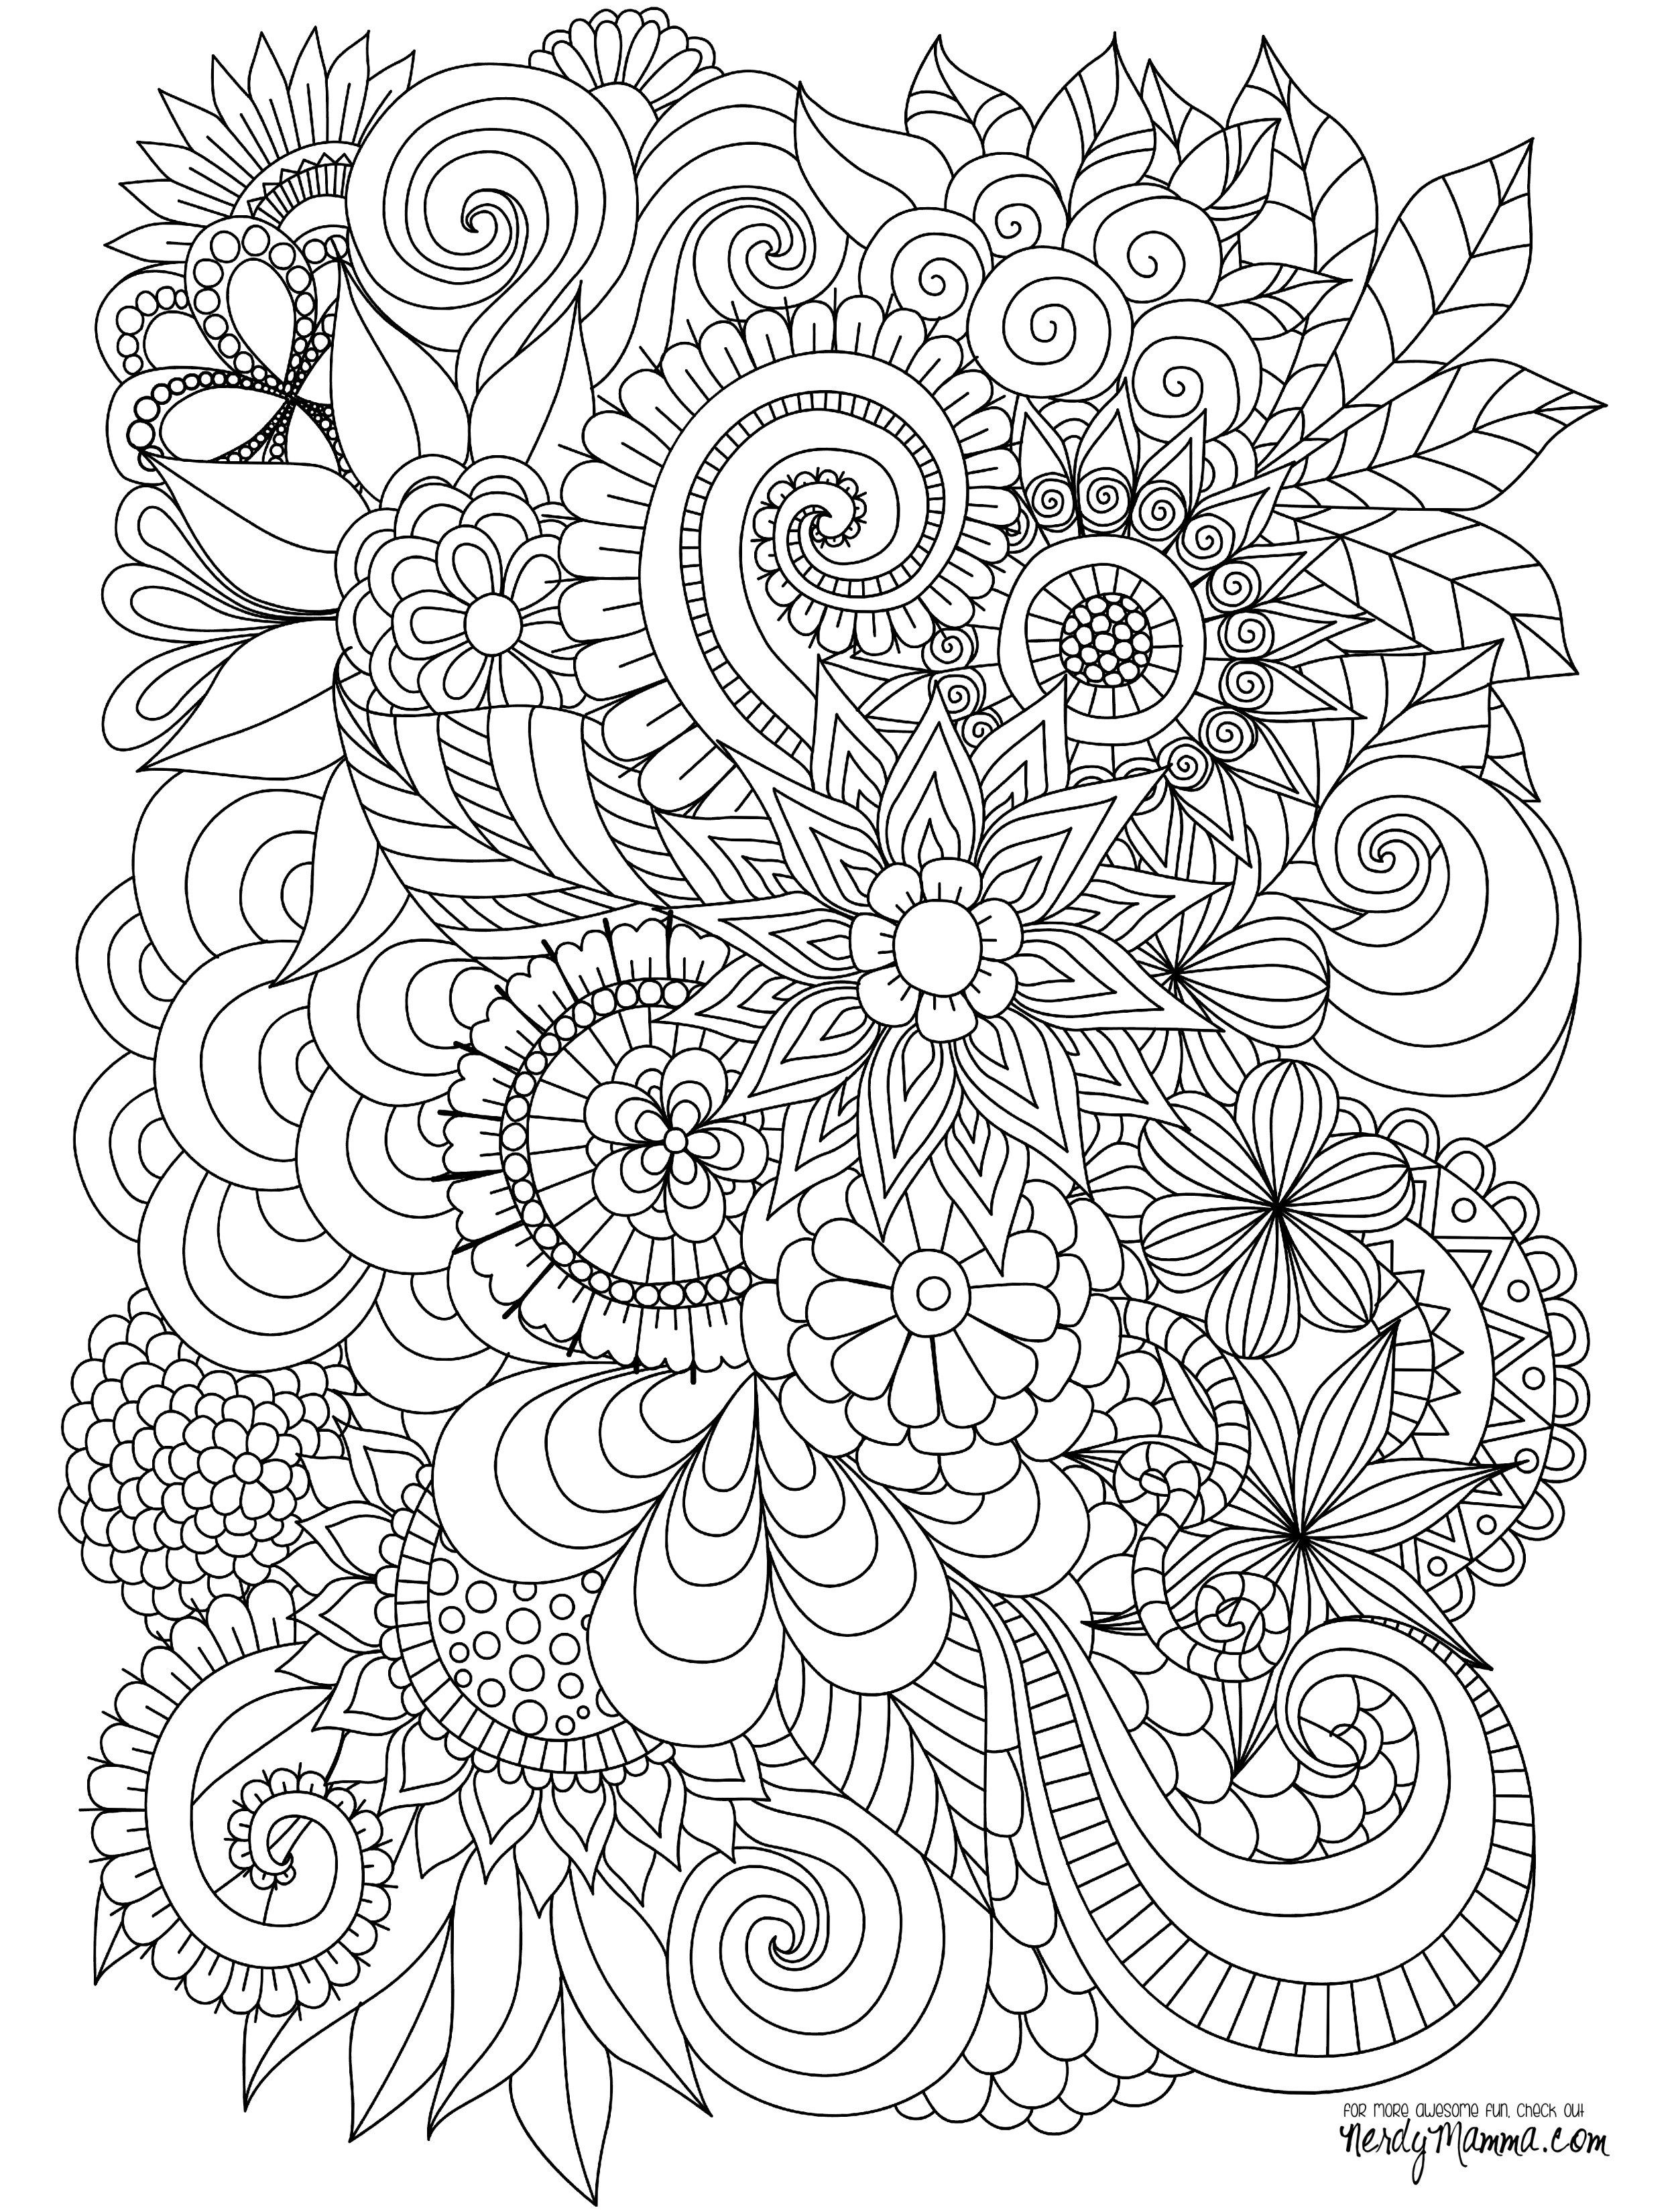 Printable Quilt Patterns Coloring Pages  Printable 11a - Free For Children